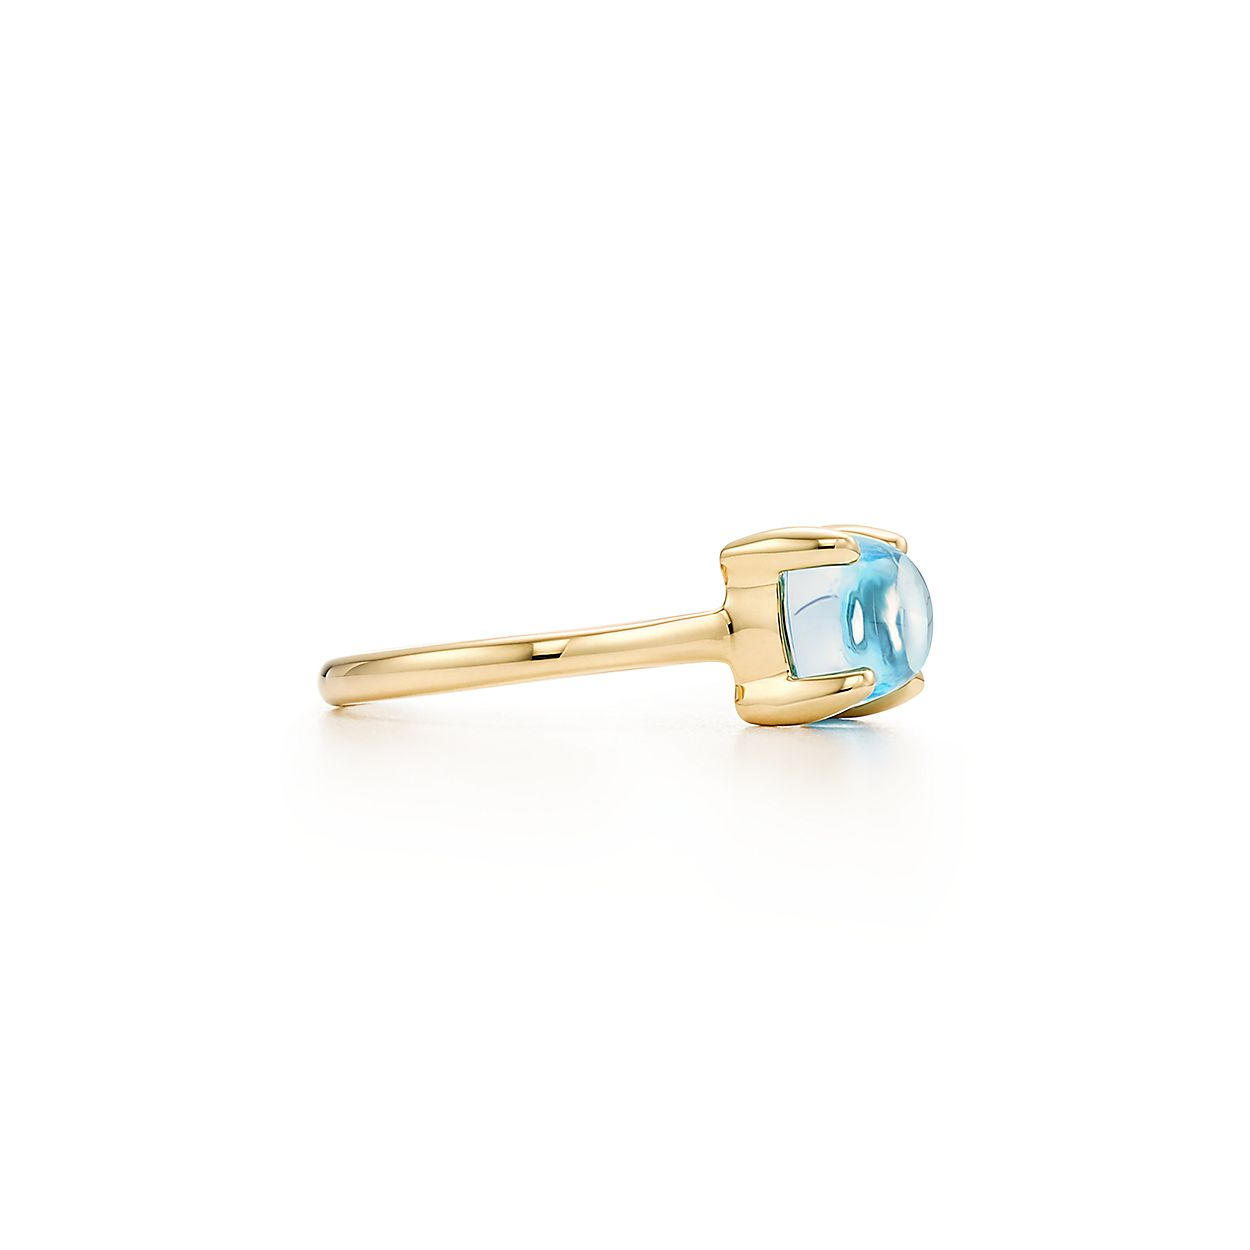 68f68661c Paloma's Sugar Stacks ring in 18k gold with a blue topaz. | Tiffany ...